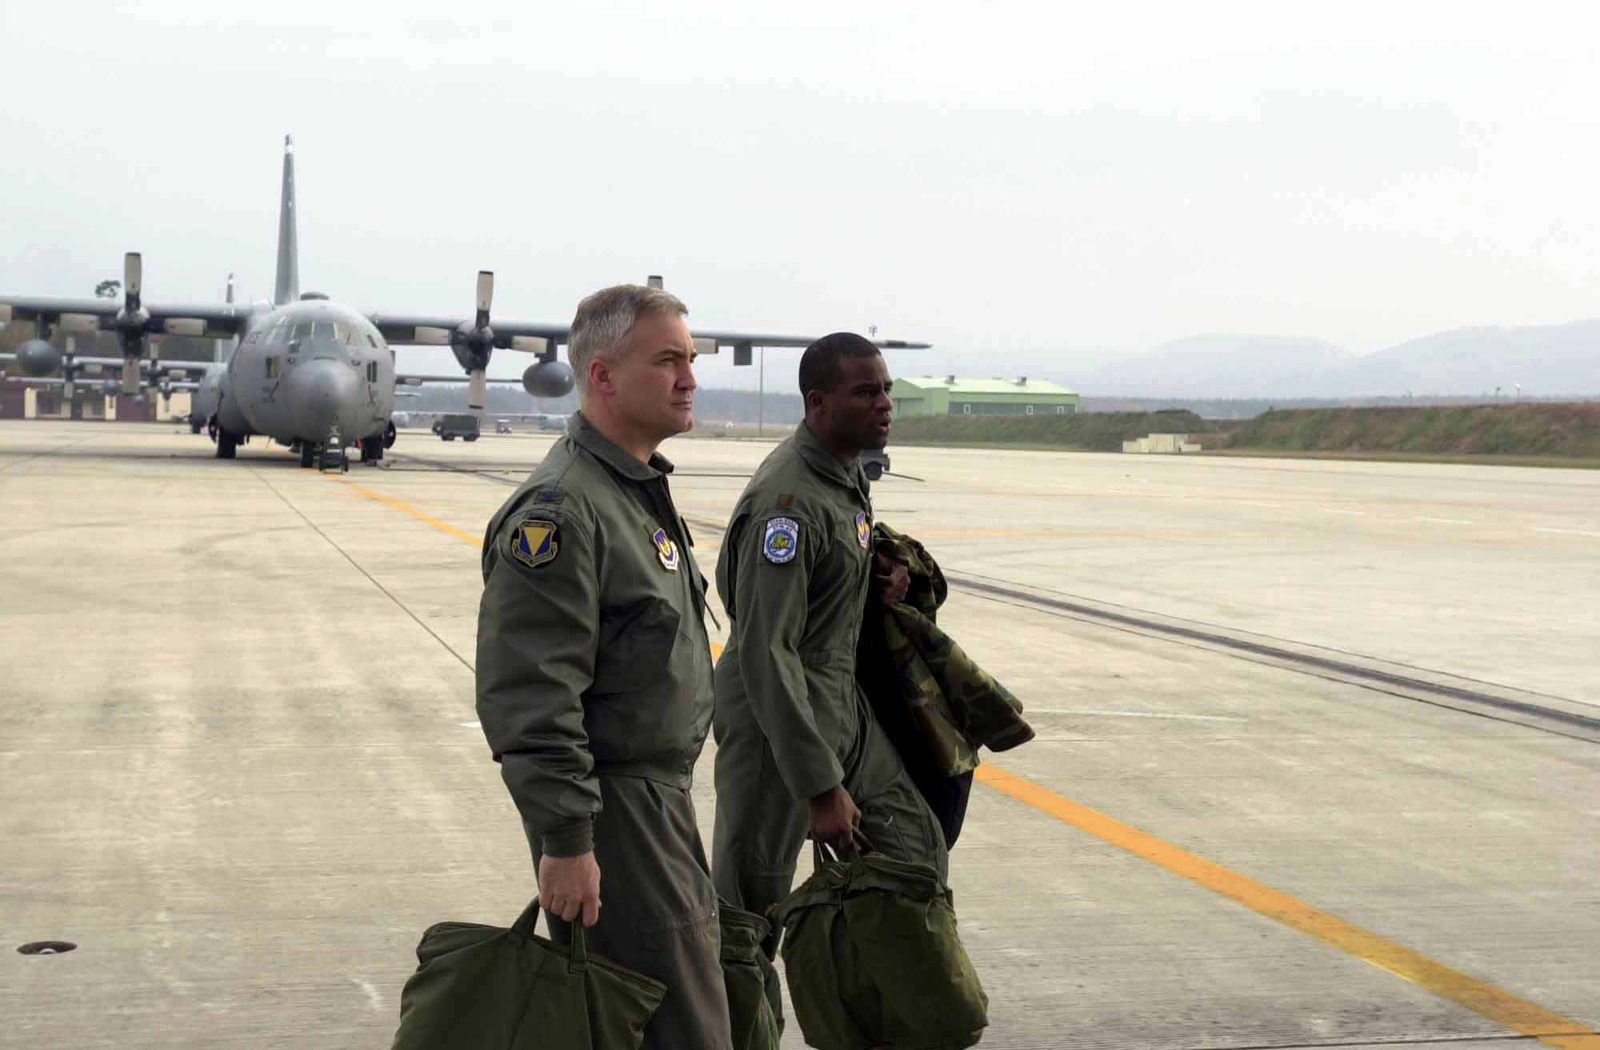 US Air Force (USAF) Colonel (COL) Erwin F. Lessel III (foregound), Commander, 86th Airlift Wing (AW) and USAF Major (MAJ) Brian Hill, a C-130 Hercules aircraft Pilot from the 37th Airlift Squadron (AS), walk across the flight line as they prepare for a mission from Ramstein Air Base (AB), Germany